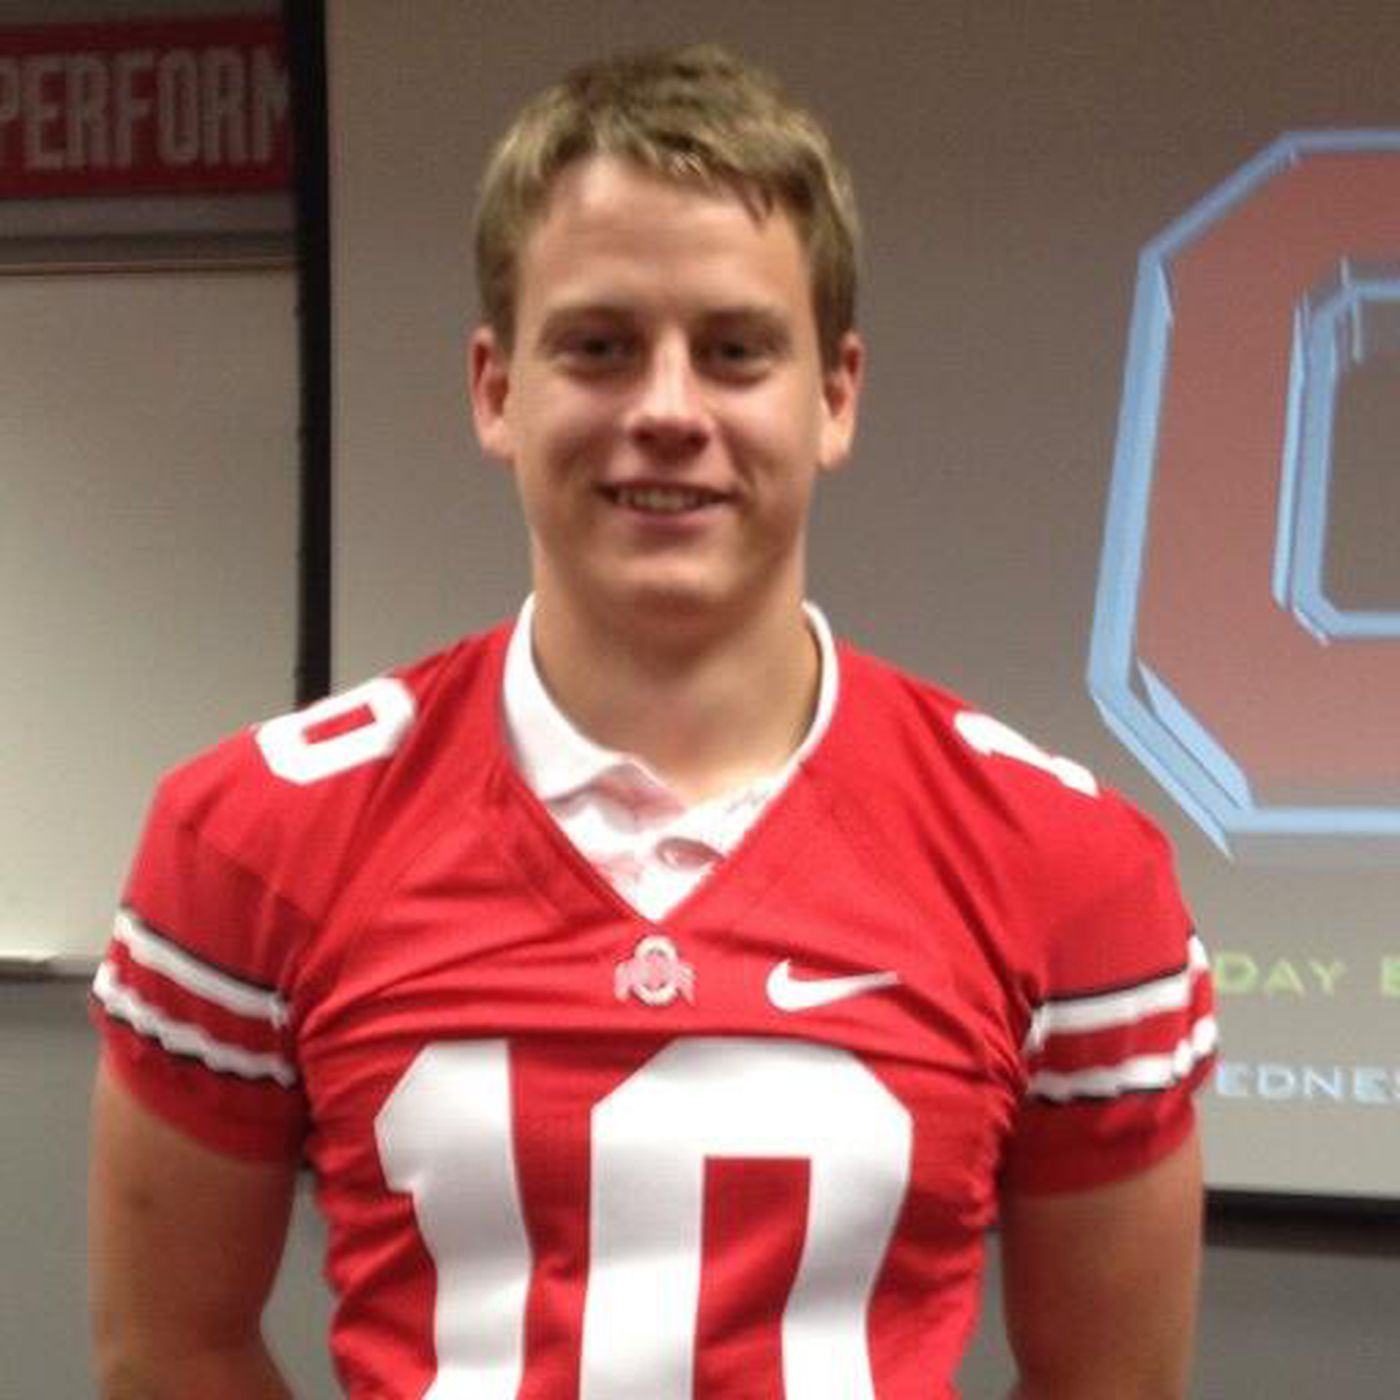 National Signing Day 2015: Joe Burrow signs with Ohio State - Land ...